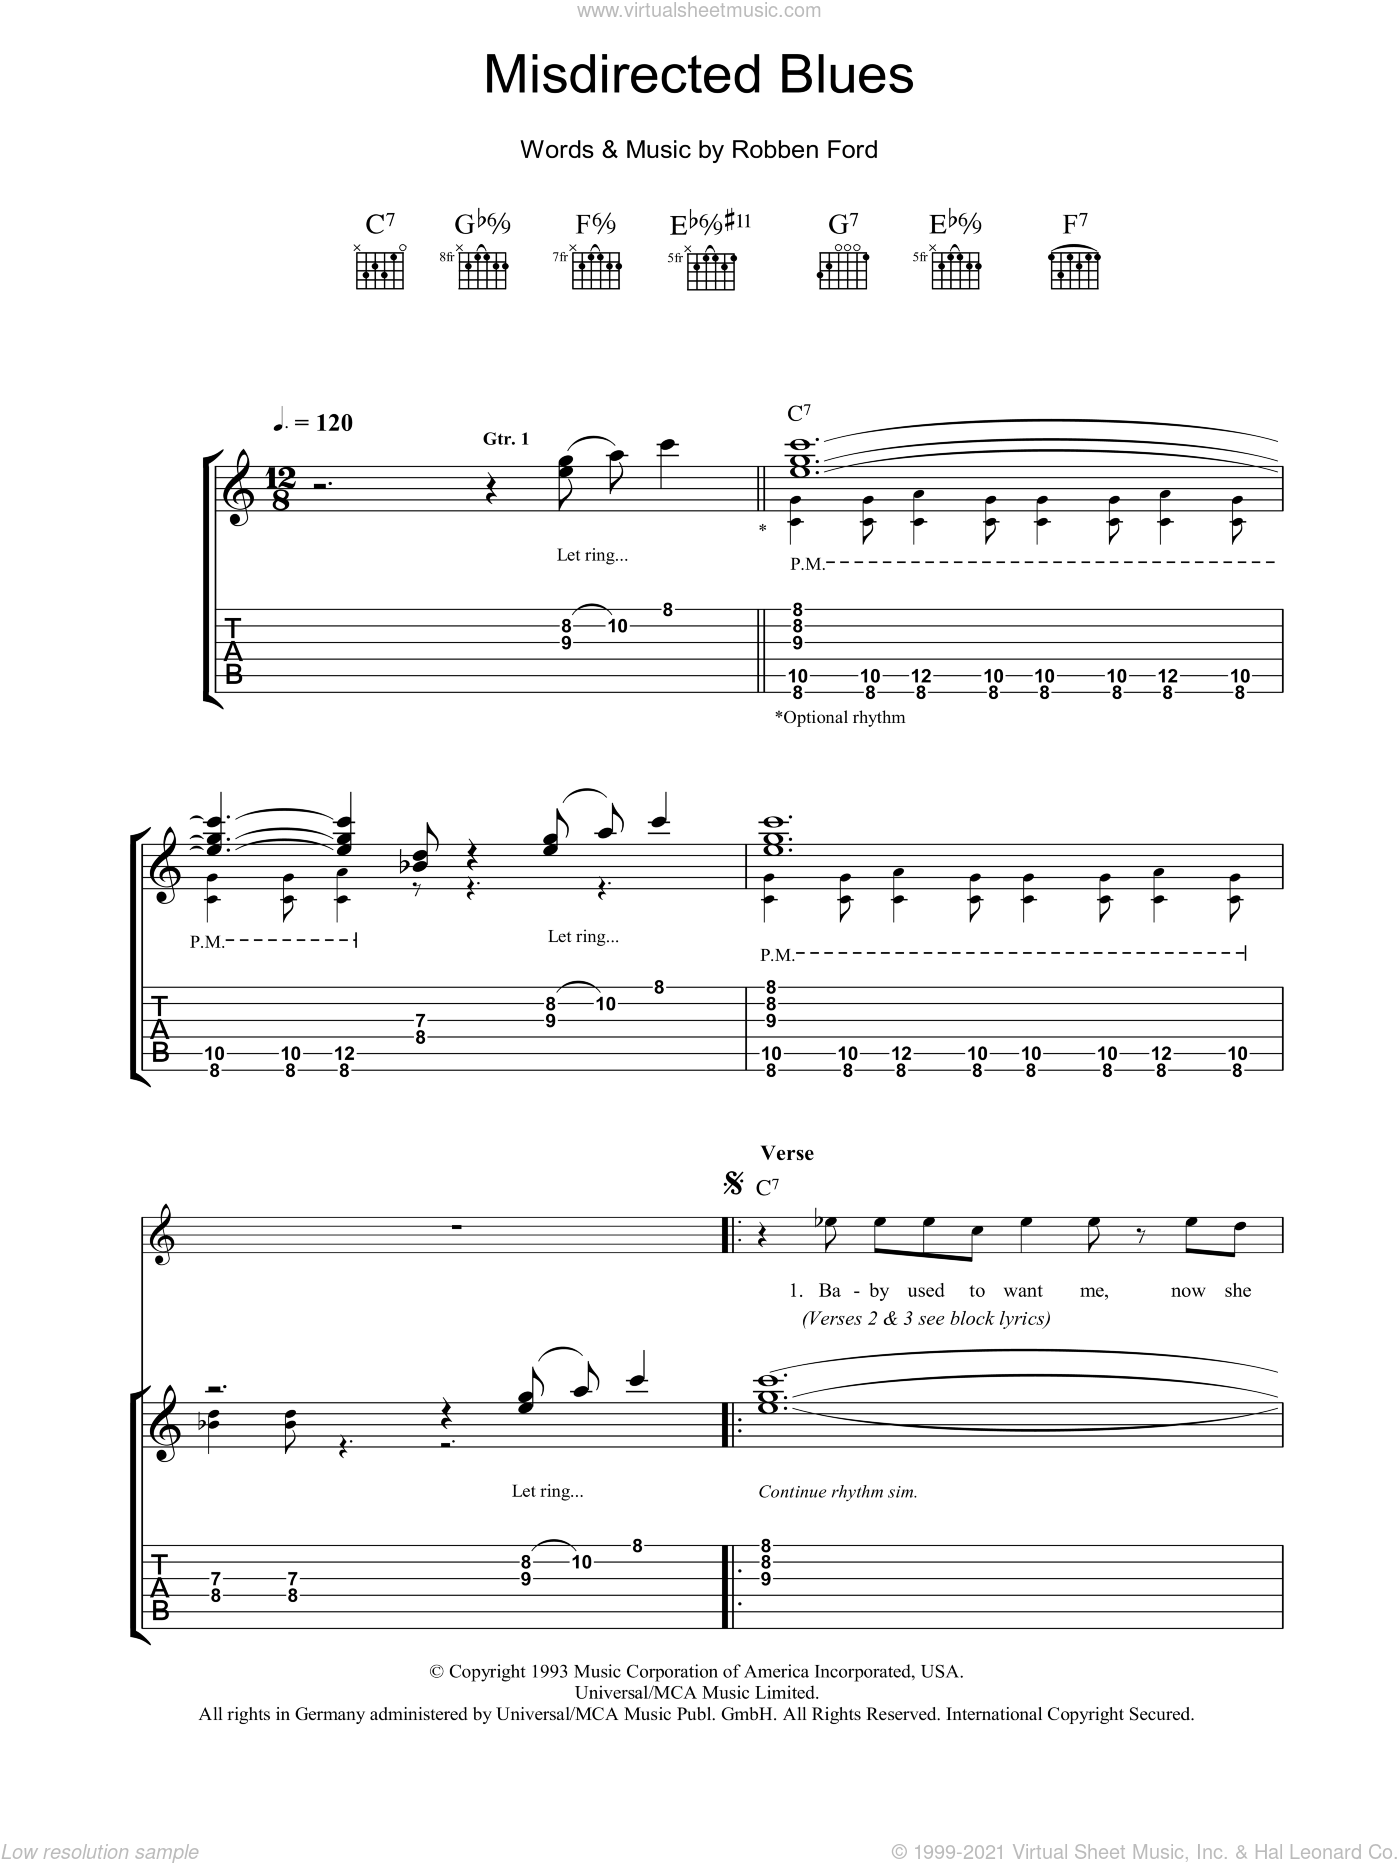 Misdirected Blues sheet music for guitar (tablature) by Robben Ford, intermediate skill level